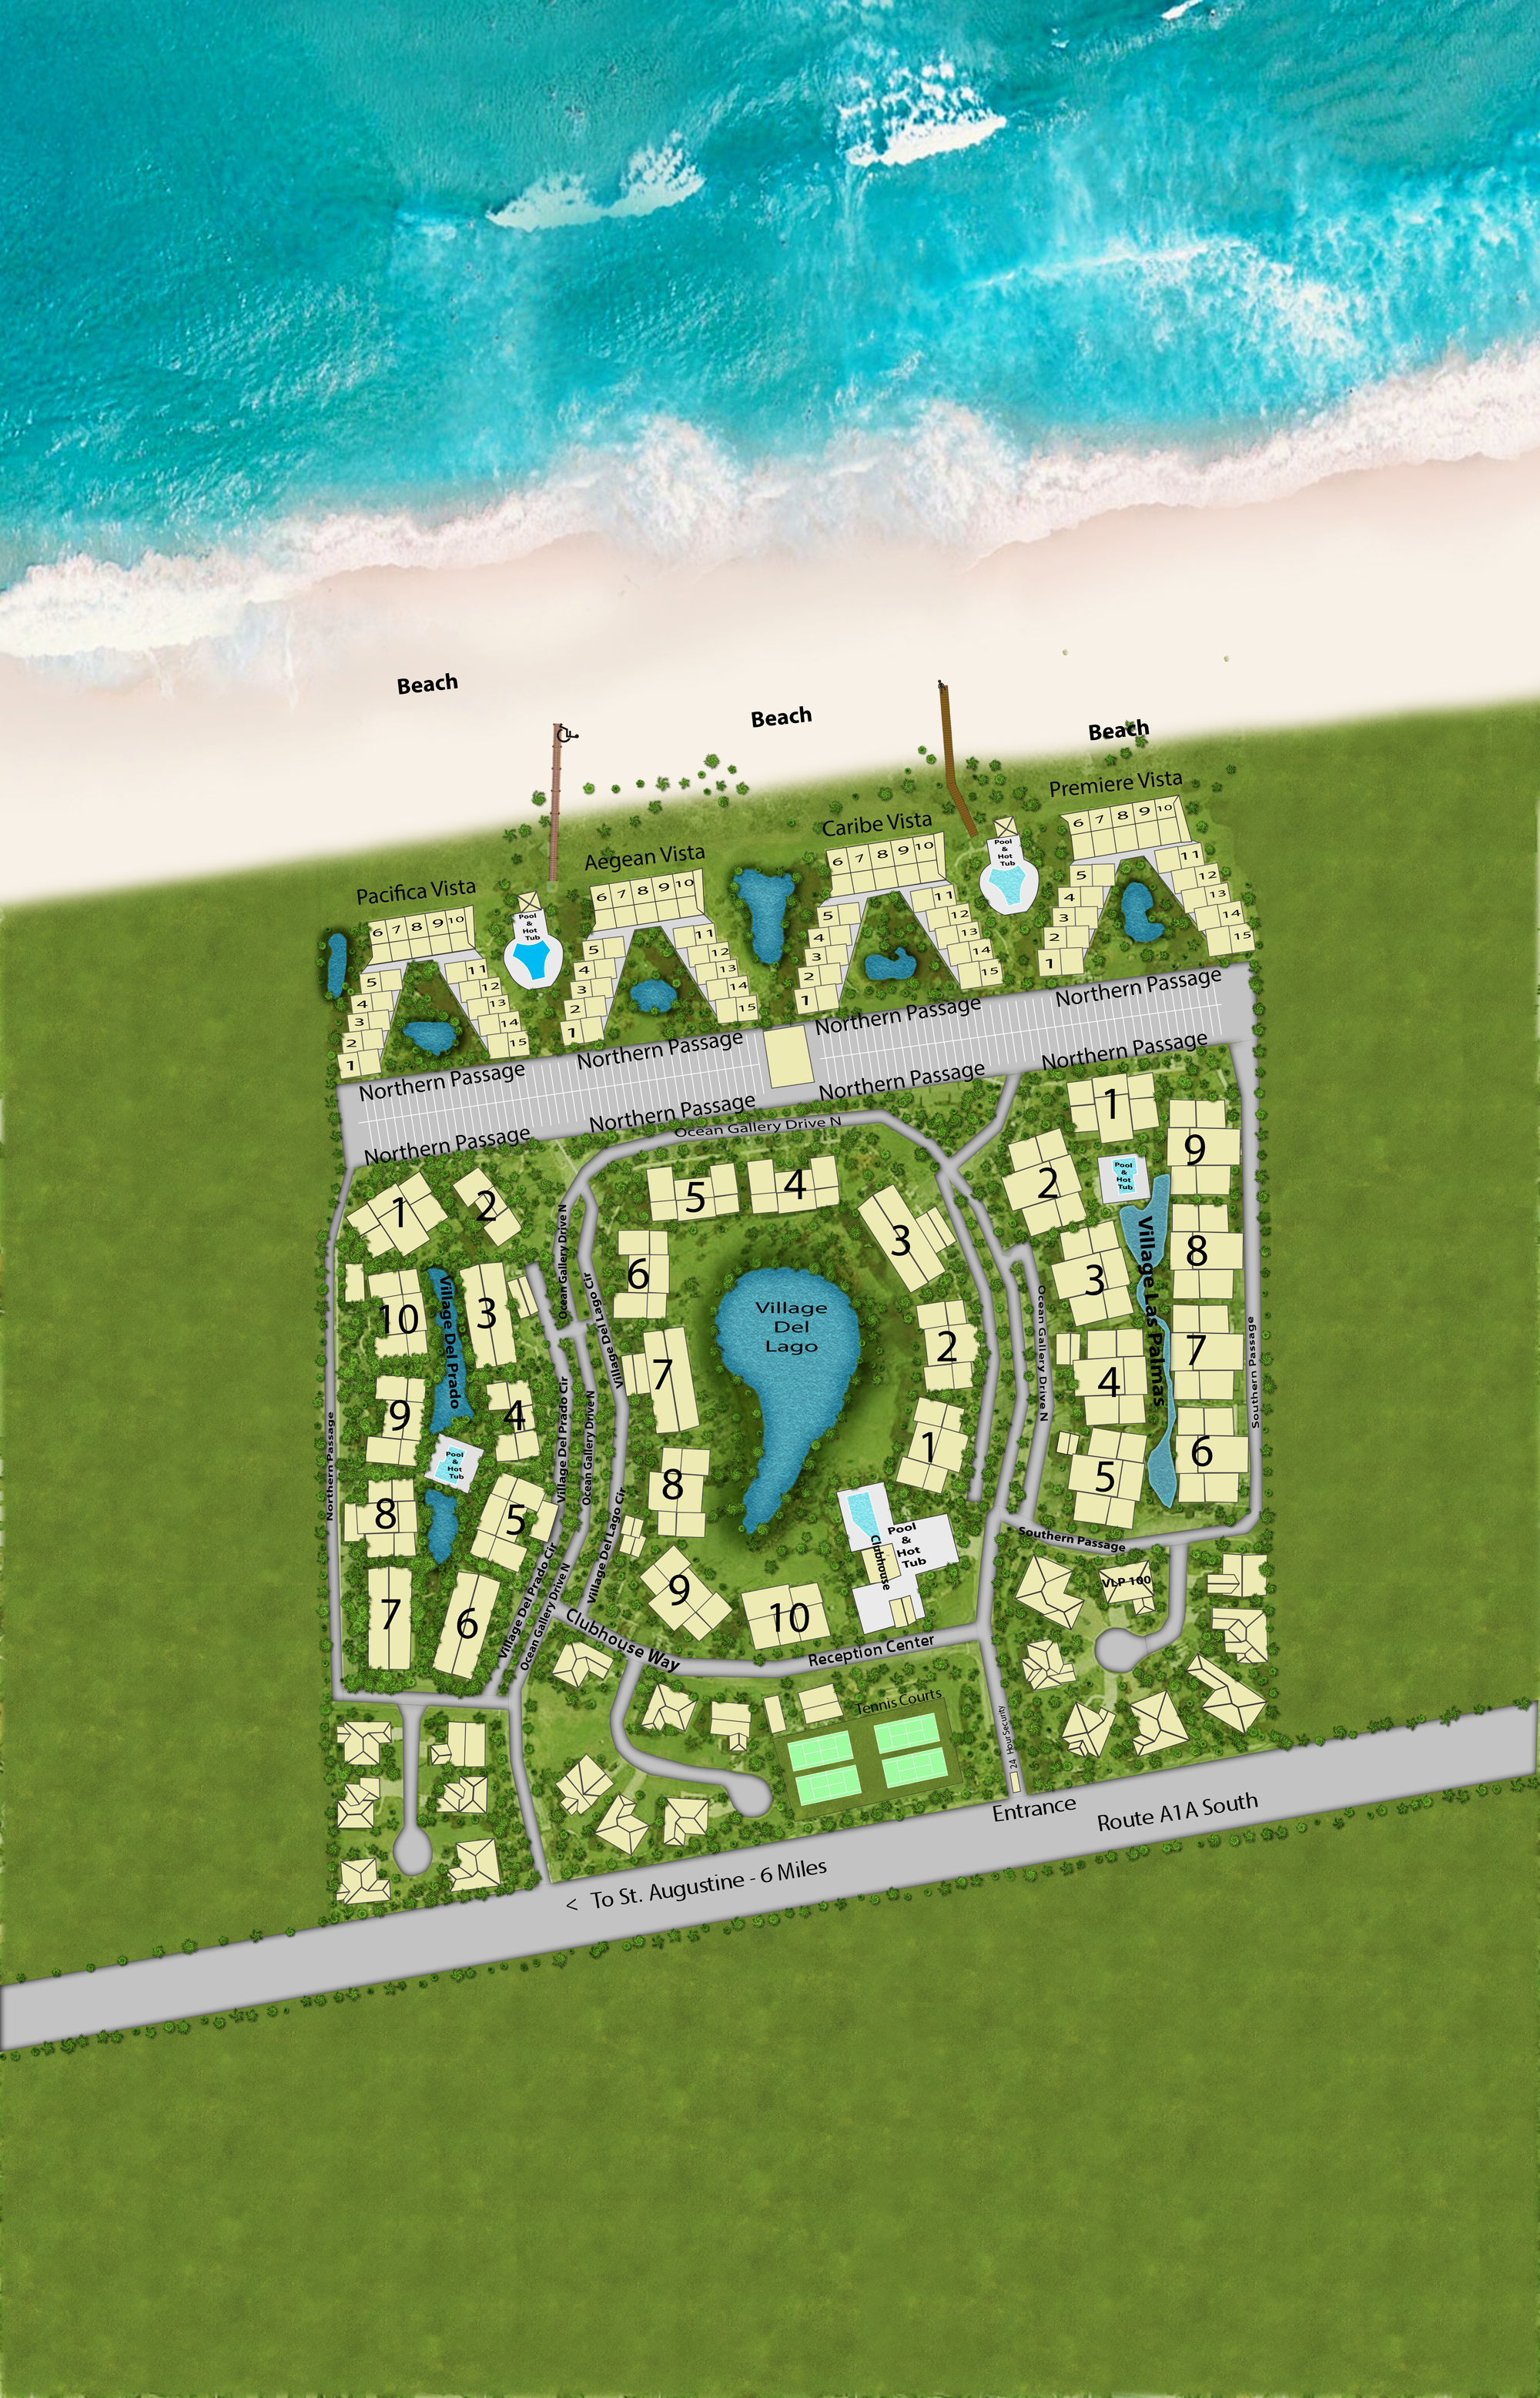 Map Of St Augustine Florida.Map Of Our Condos For Rent In St Augustine Fl The Ocean Gallery